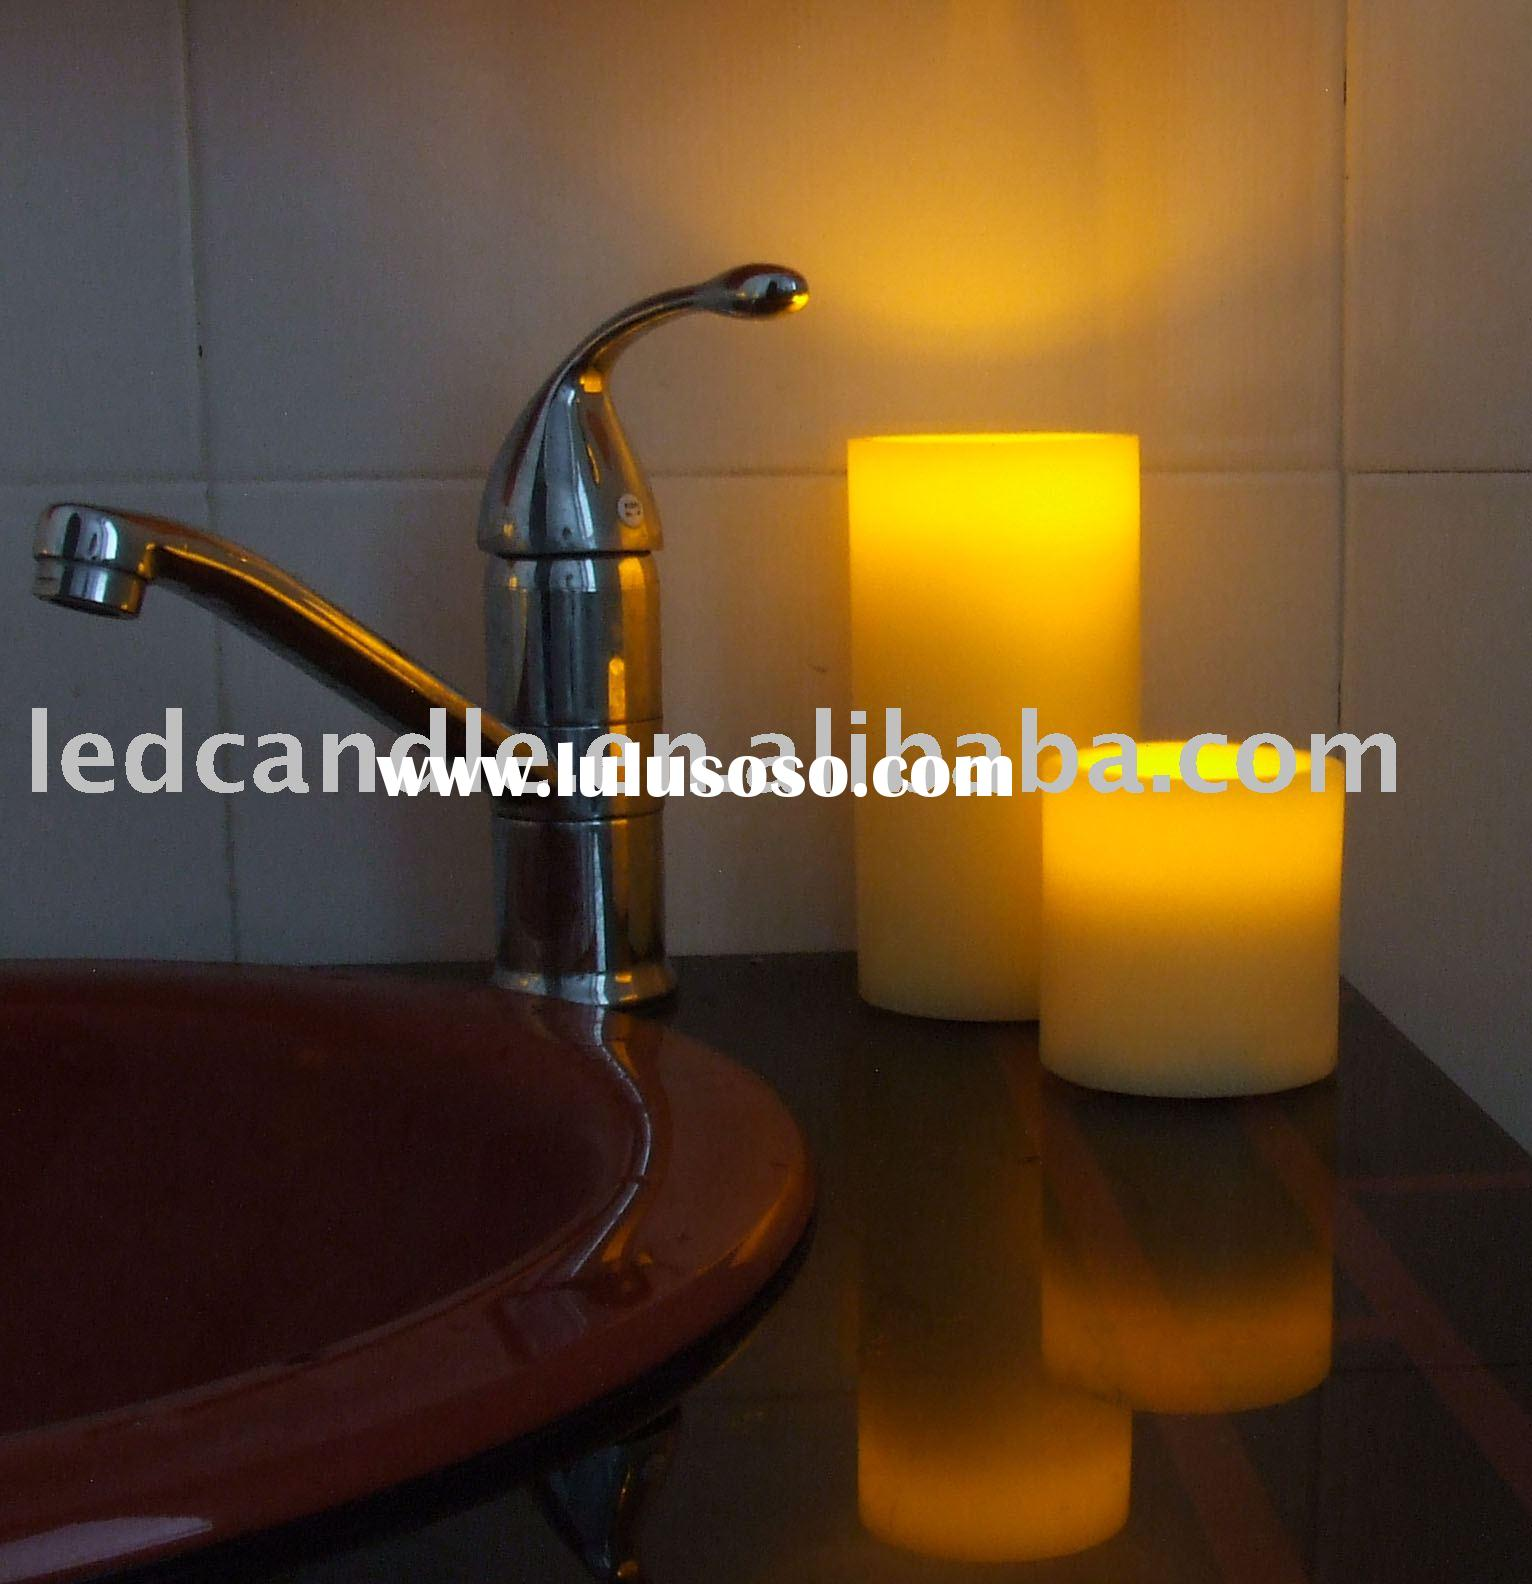 Wax LED Candle, Candle Timer